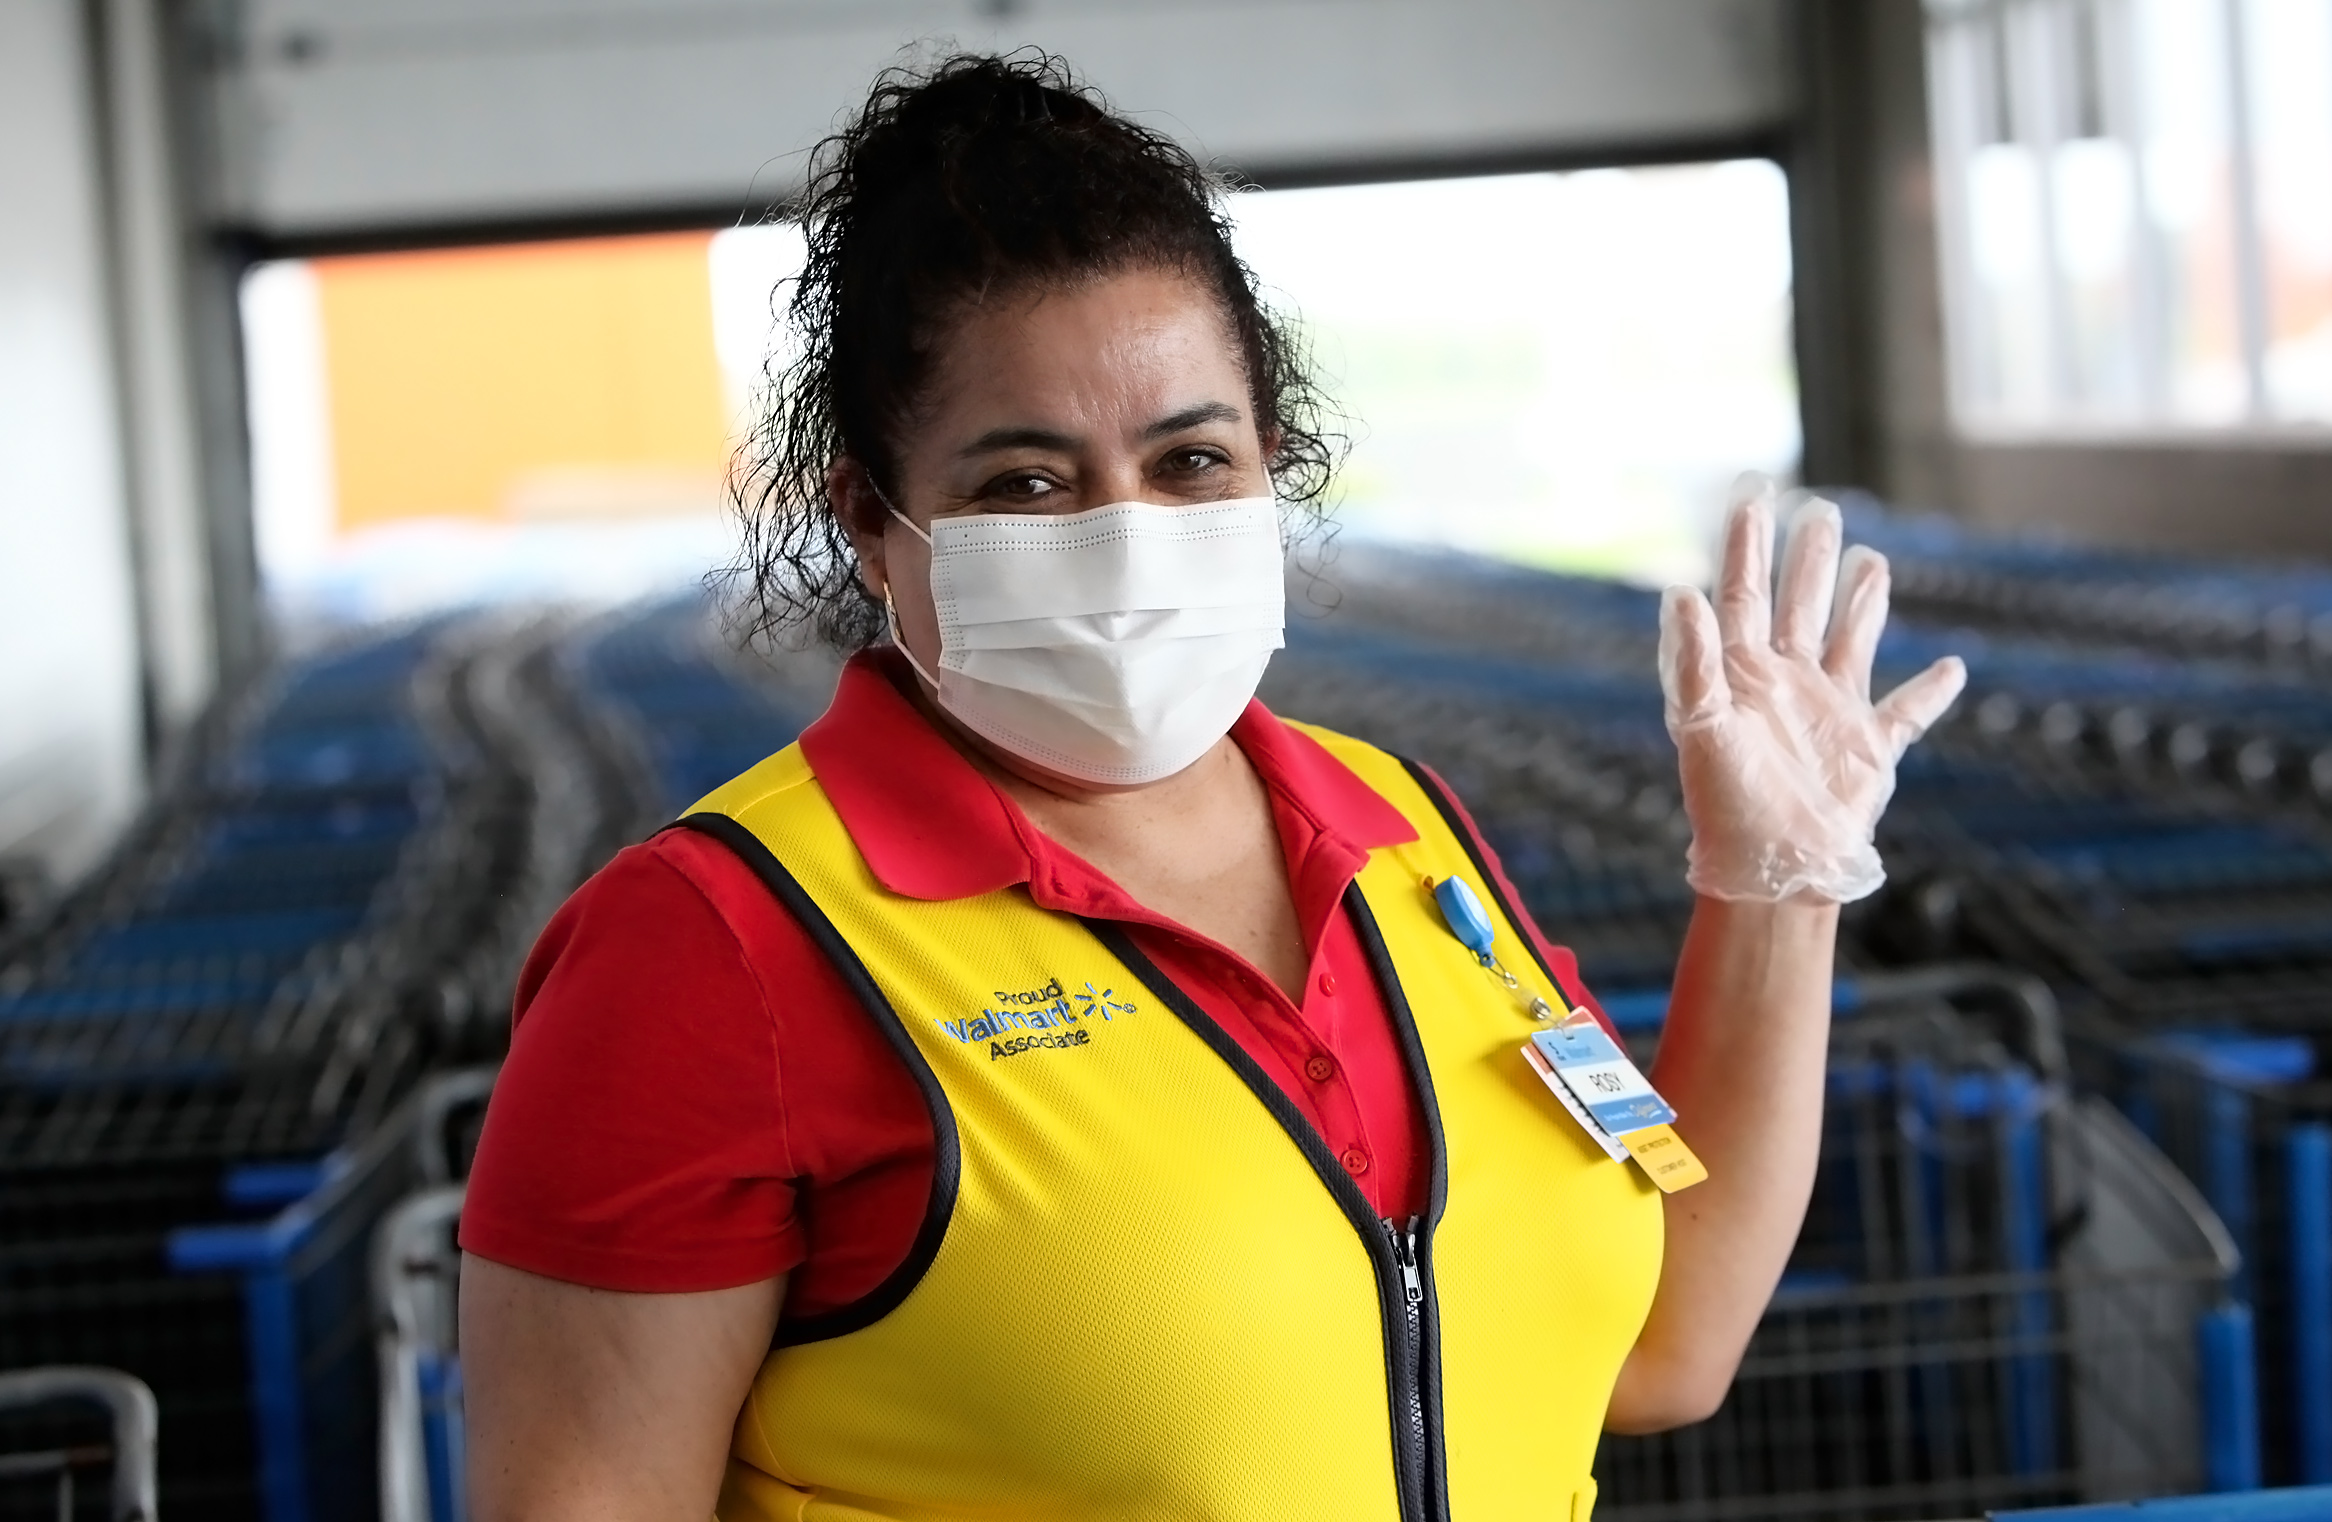 Walmart Reinstates Mask Mandate for Workers